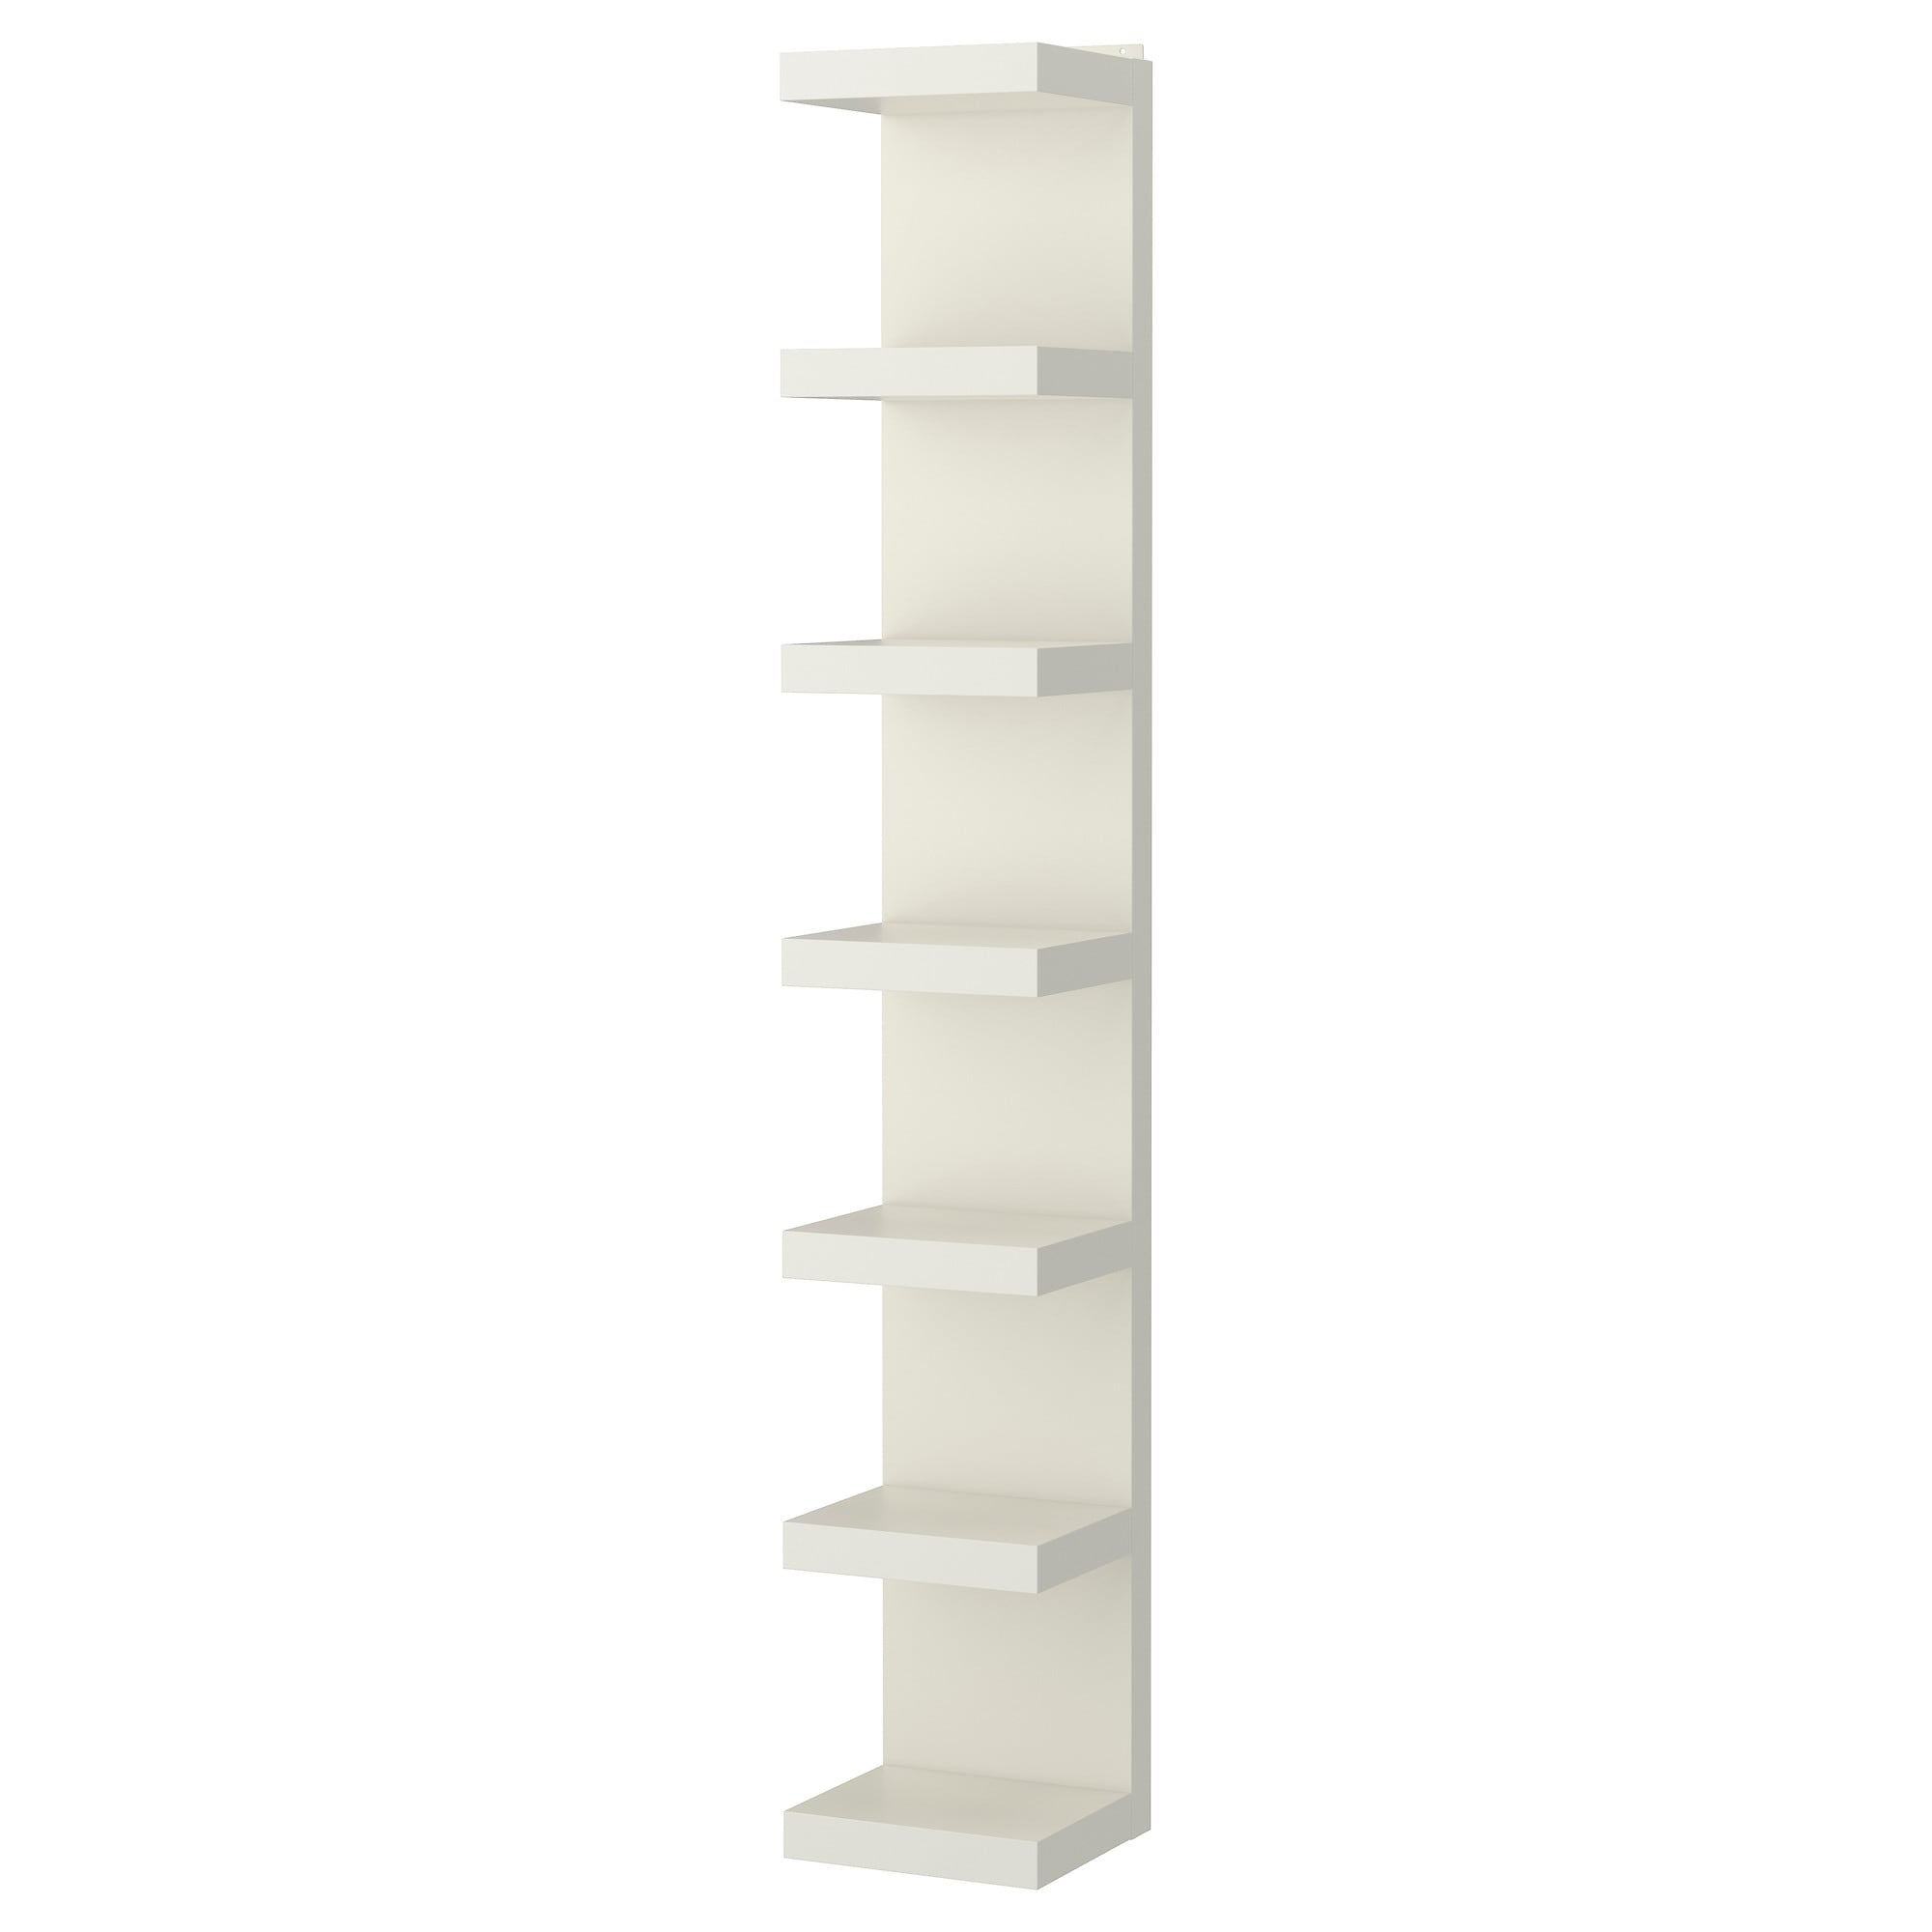 lack wall shelf unit white ikea floating corner shelves inter systems old coat rack hanging from ceiling hidden mantel brackets custom built closet organizers free entertainment